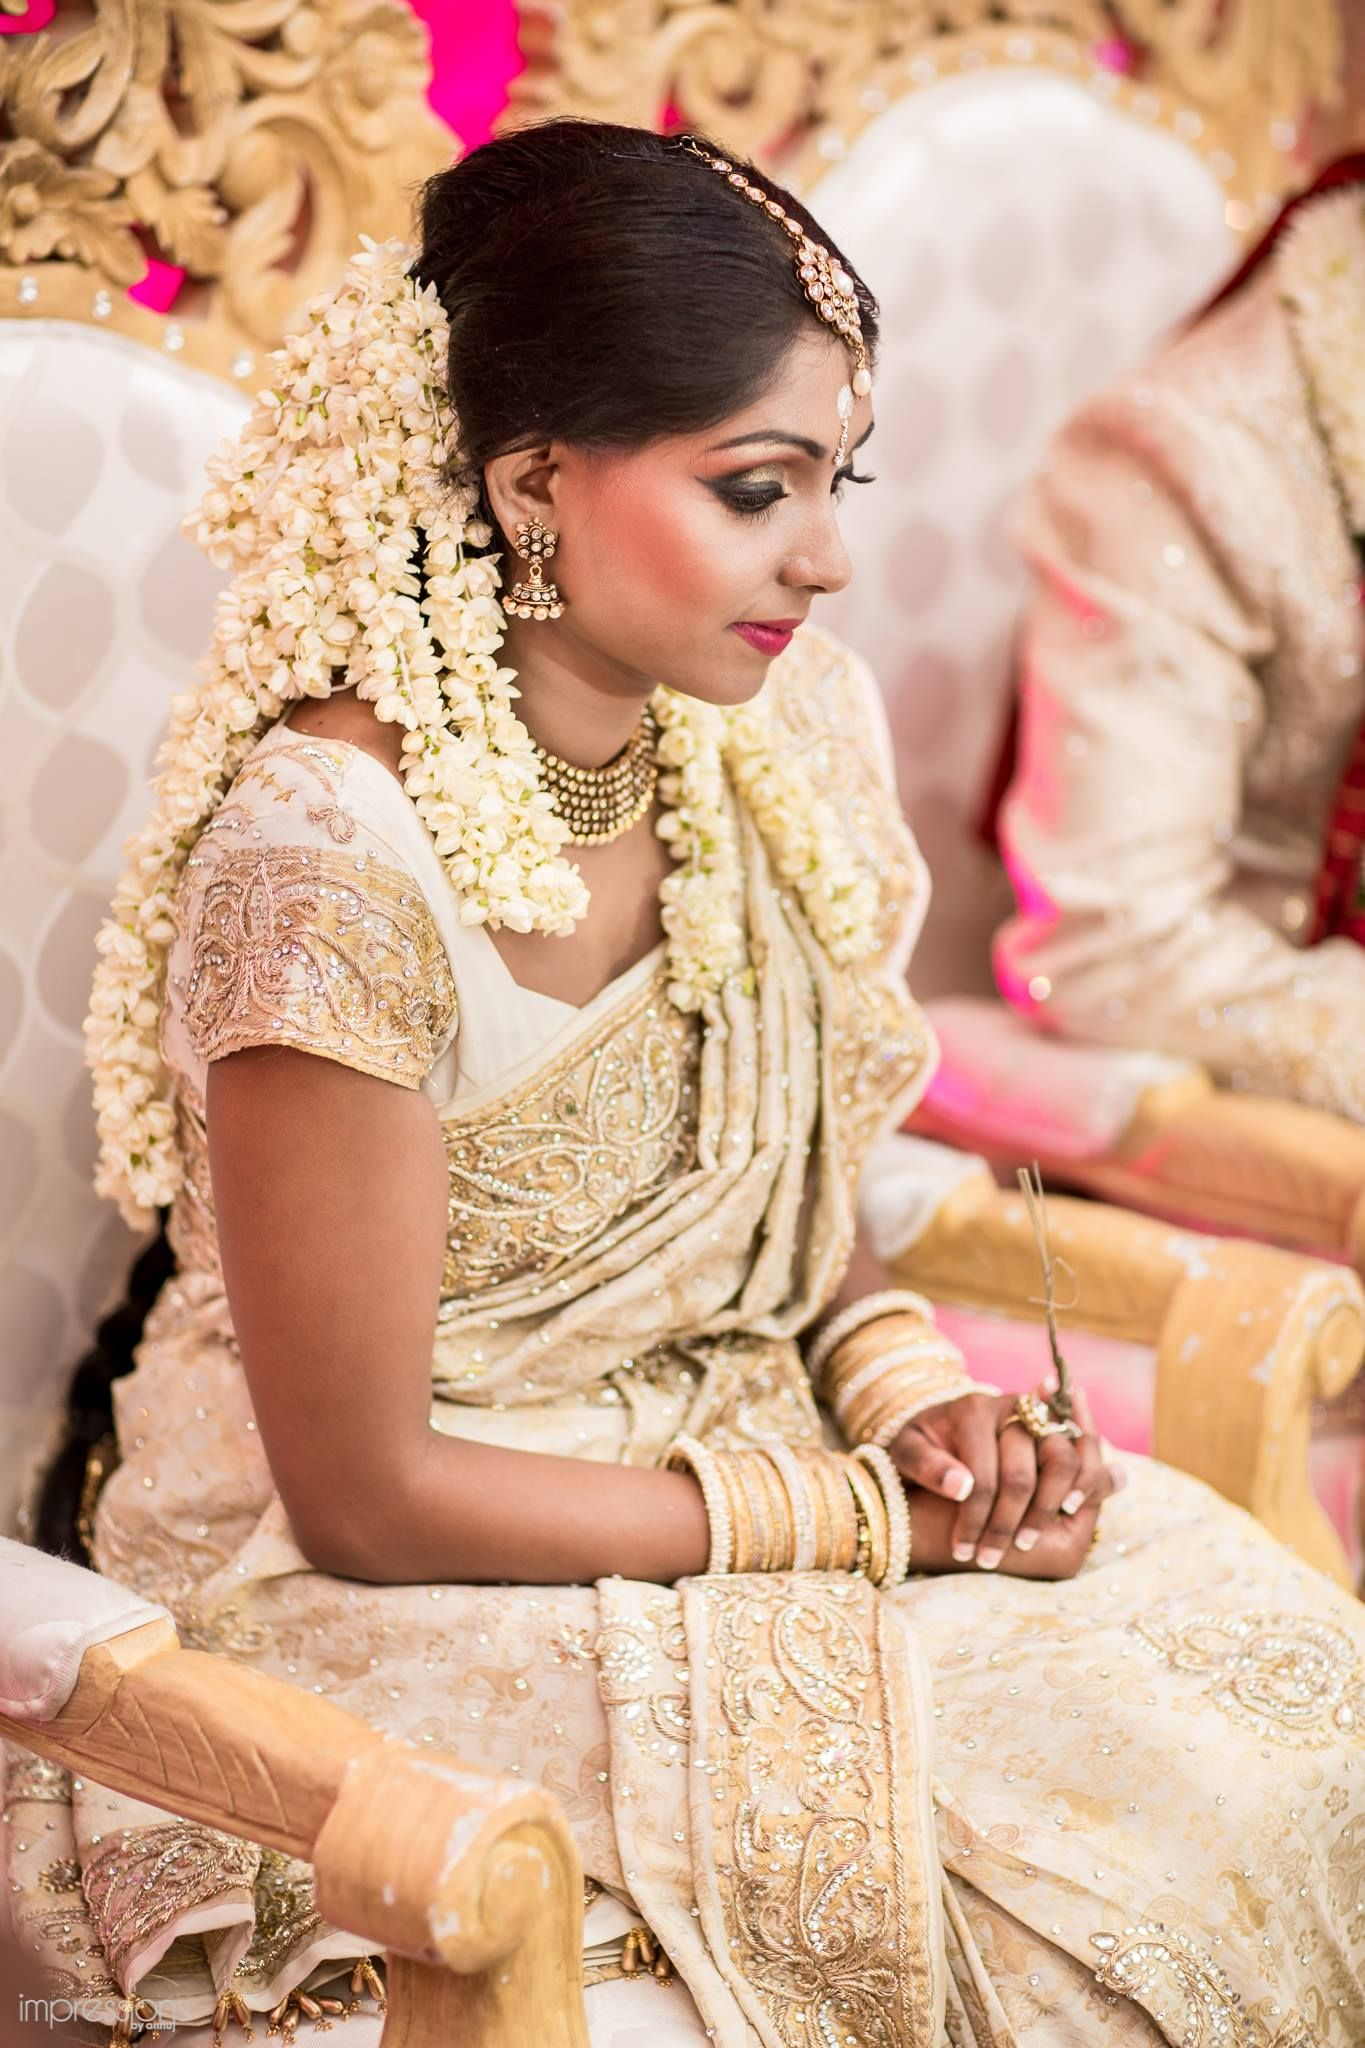 Anu & Goby Hindu Wedding London, England Indian